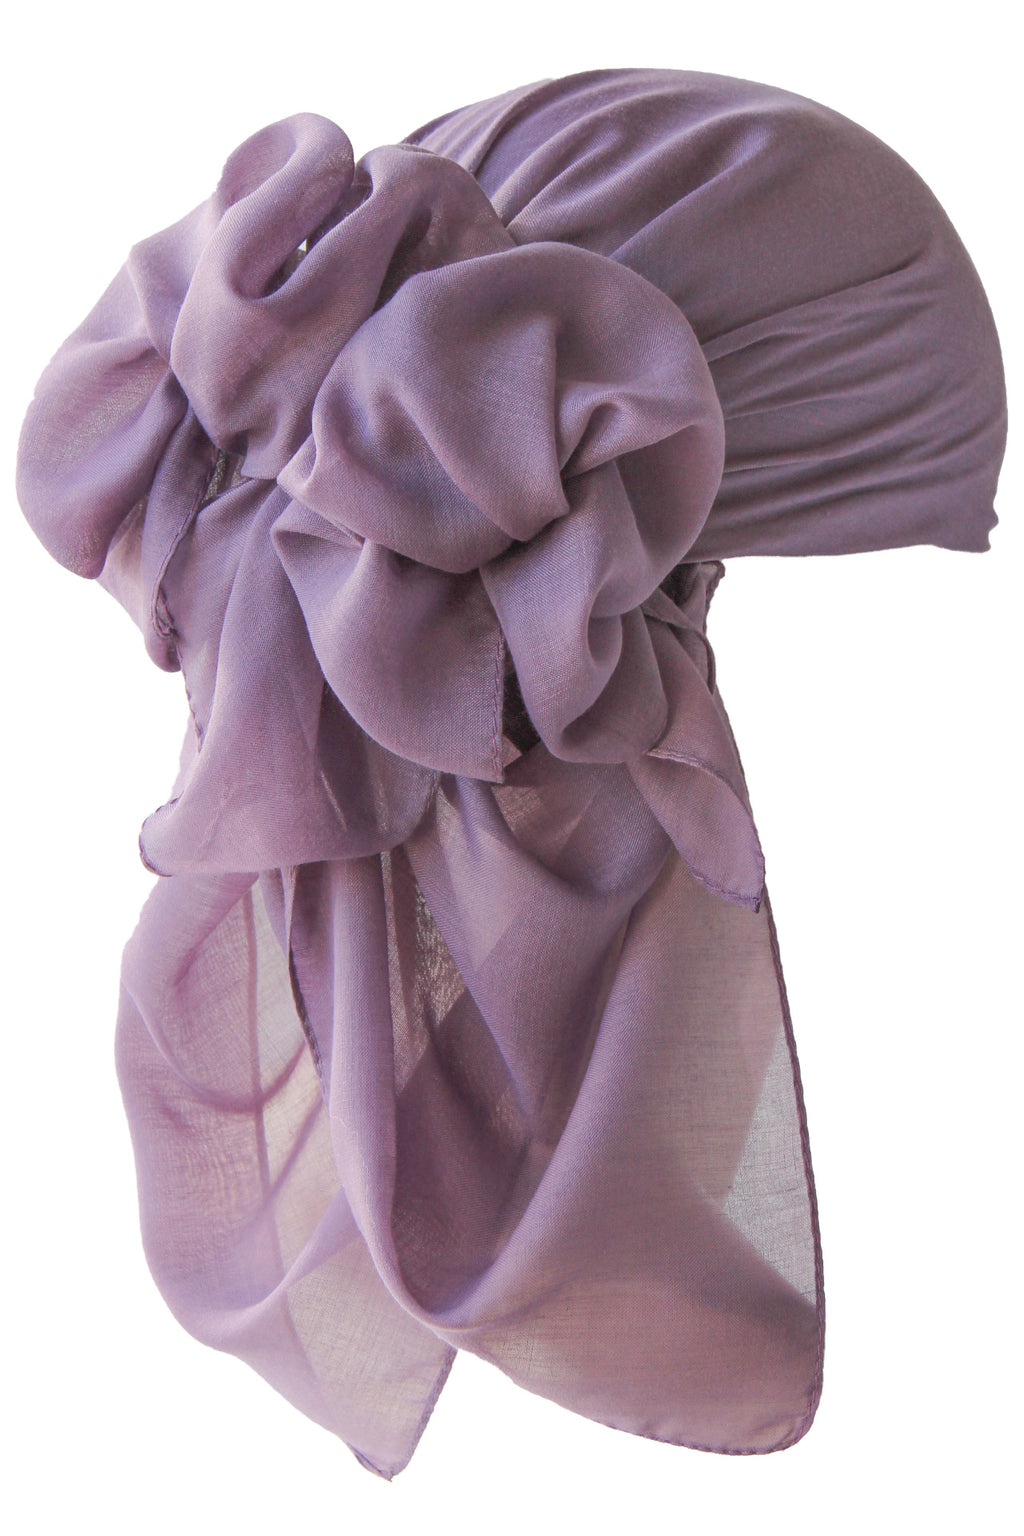 Everyday Square Head Scarf - Plain Lavander